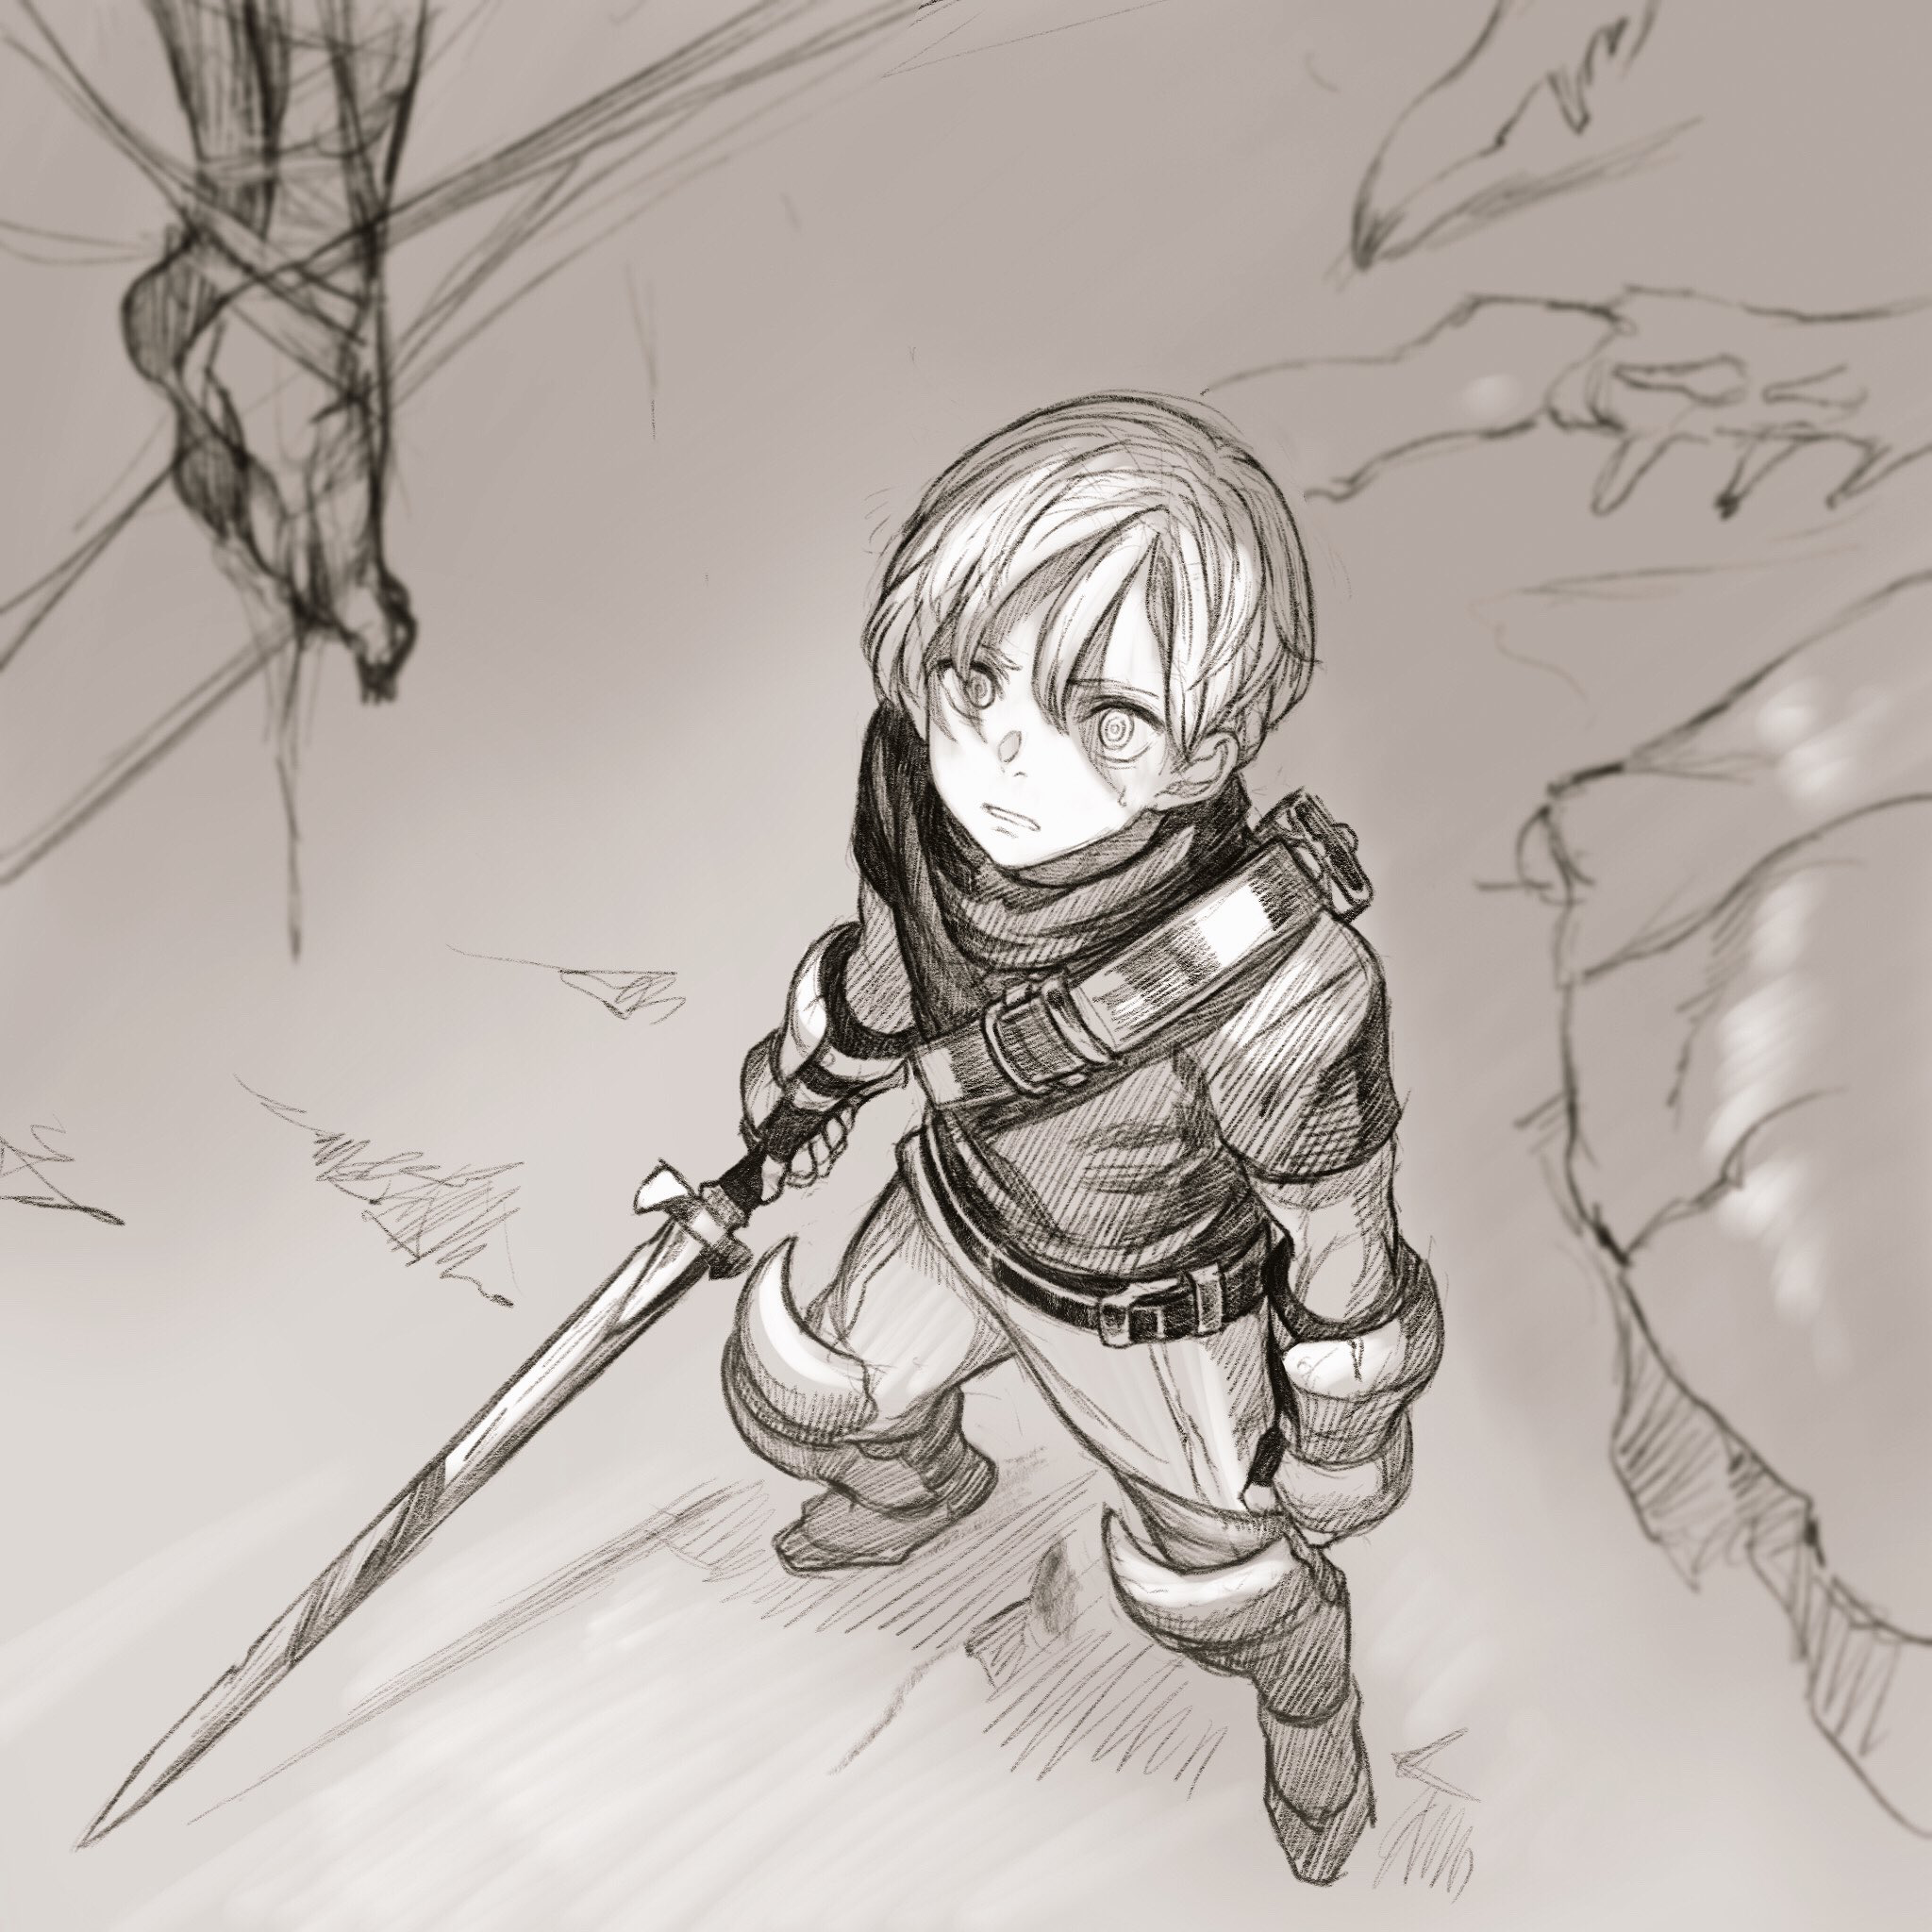 Cute anime boy, fantasy, downward perspective | Drawing | Pinterest ...